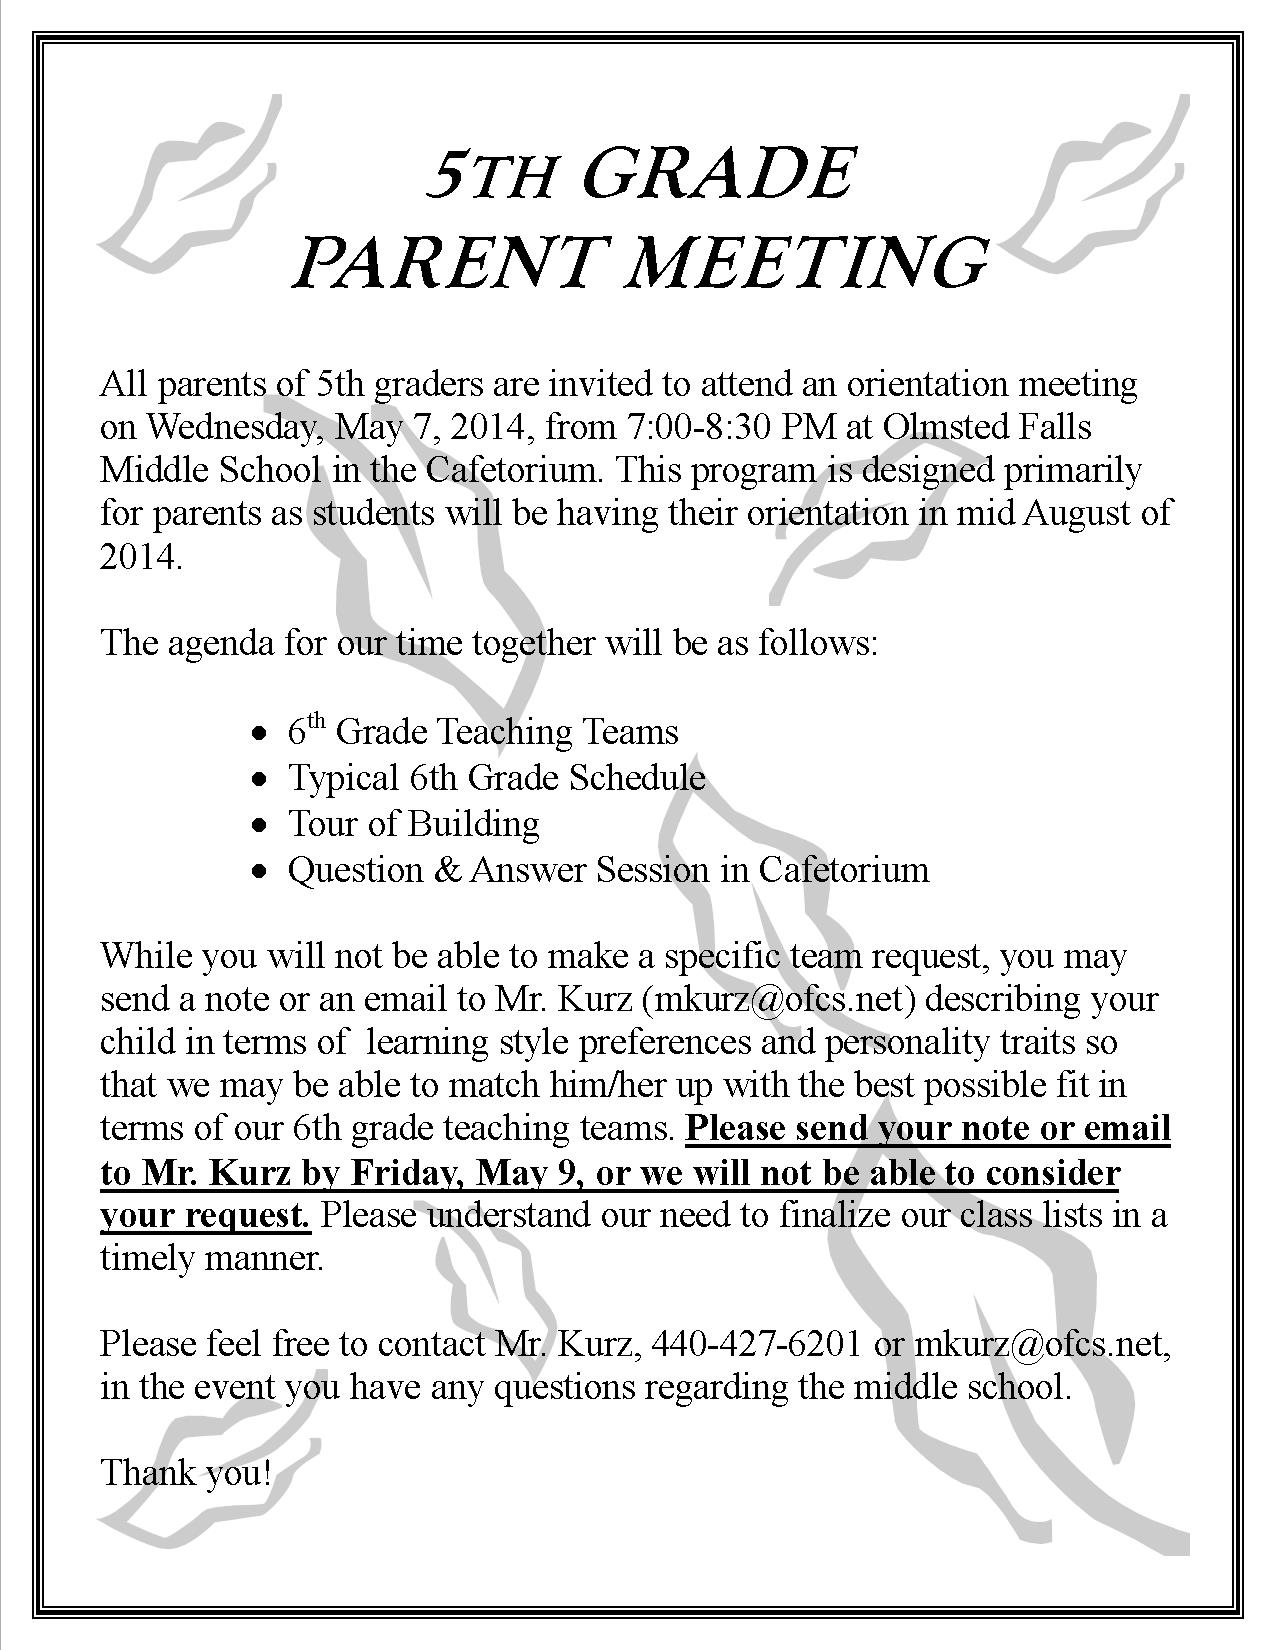 Parent Update – May 2, 2014 | Olmsted Falls Schools - Blog ...